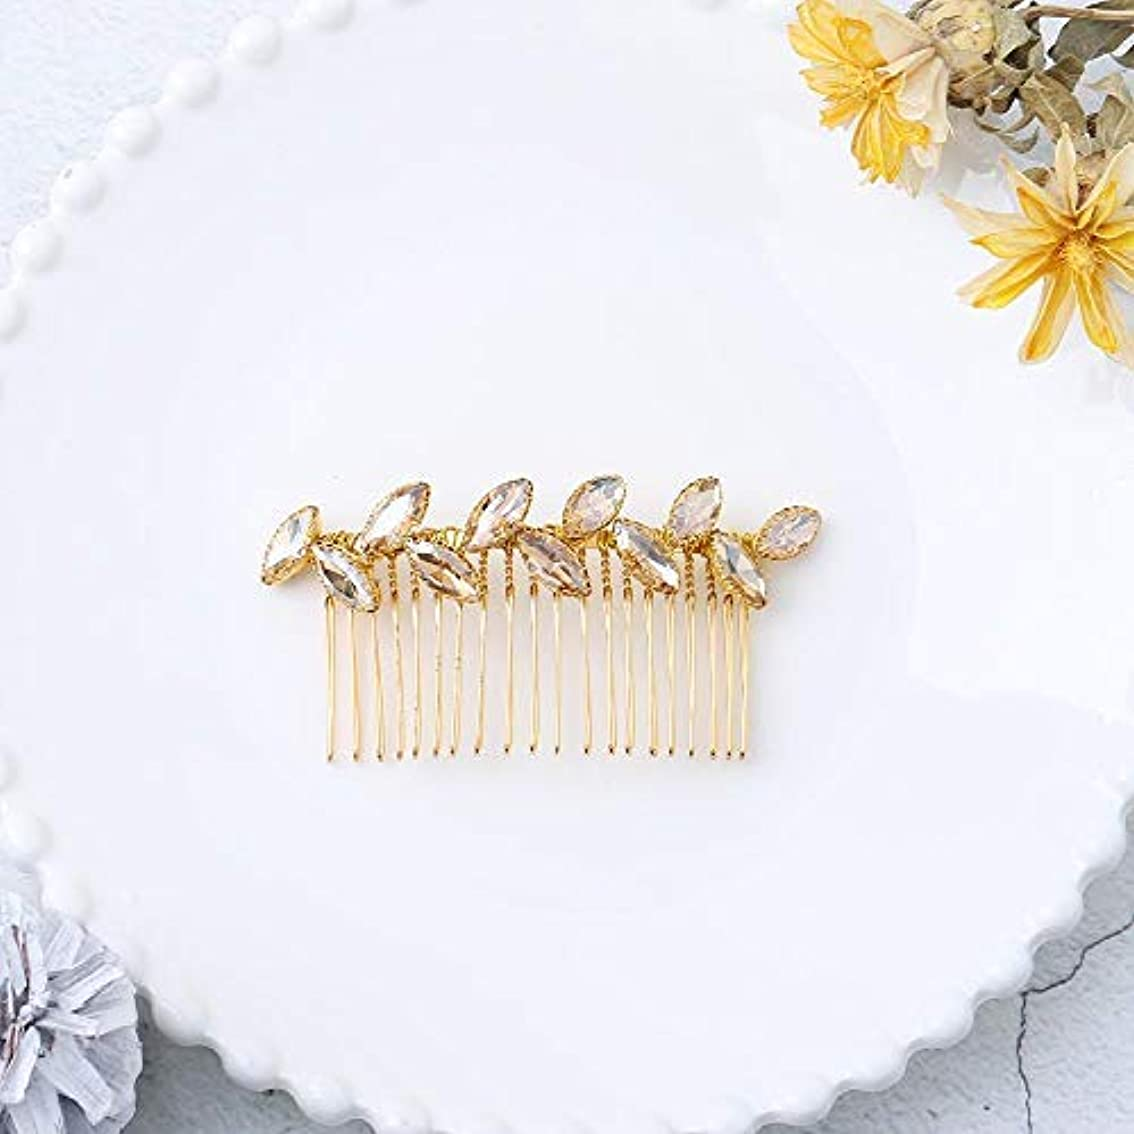 名誉あるできない品種Jovono Bride Wedding Hair Comb Bridal Headpieces with Champagne Rhinestone for Women and Girls (Gold) [並行輸入品]